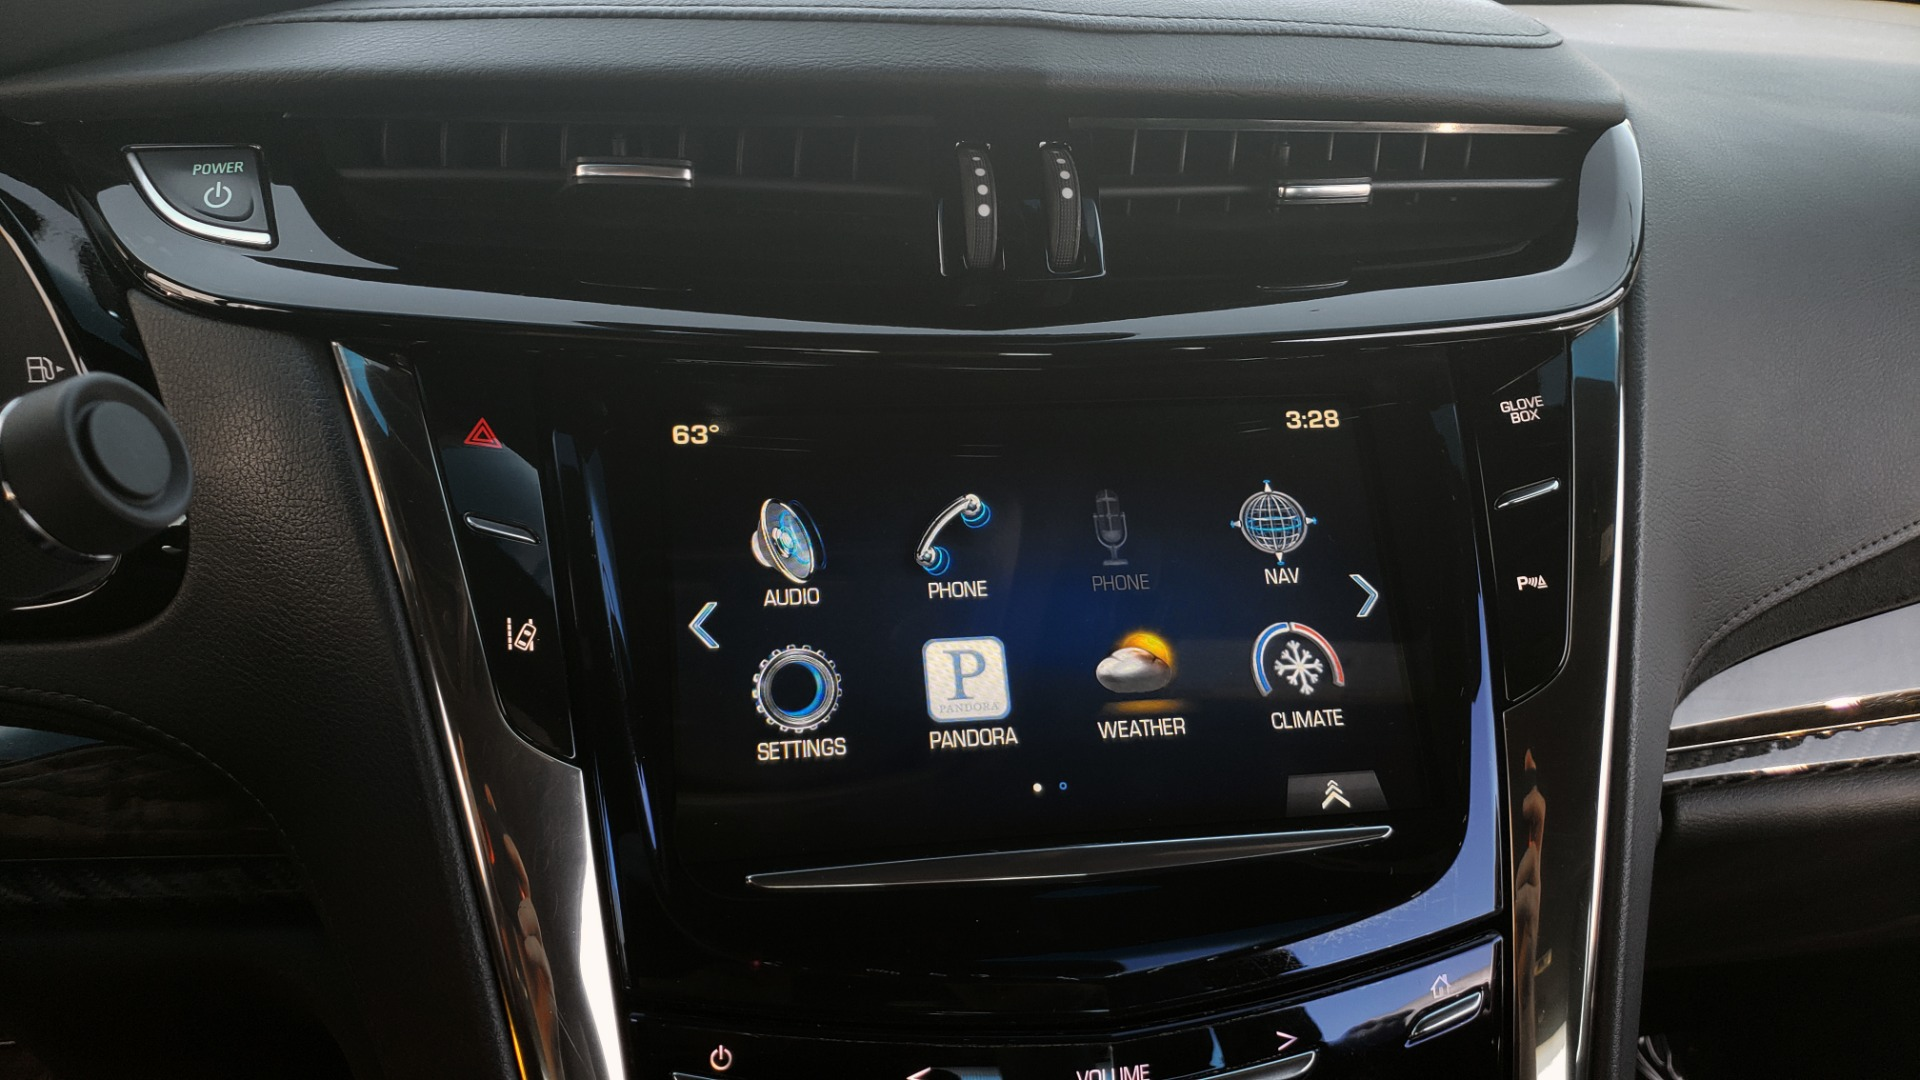 Used 2014 Cadillac ELR 2DR COUPE / HYBRID / NAV / BOSE / HEATED SEATS / REARVIEW for sale $19,995 at Formula Imports in Charlotte NC 28227 50